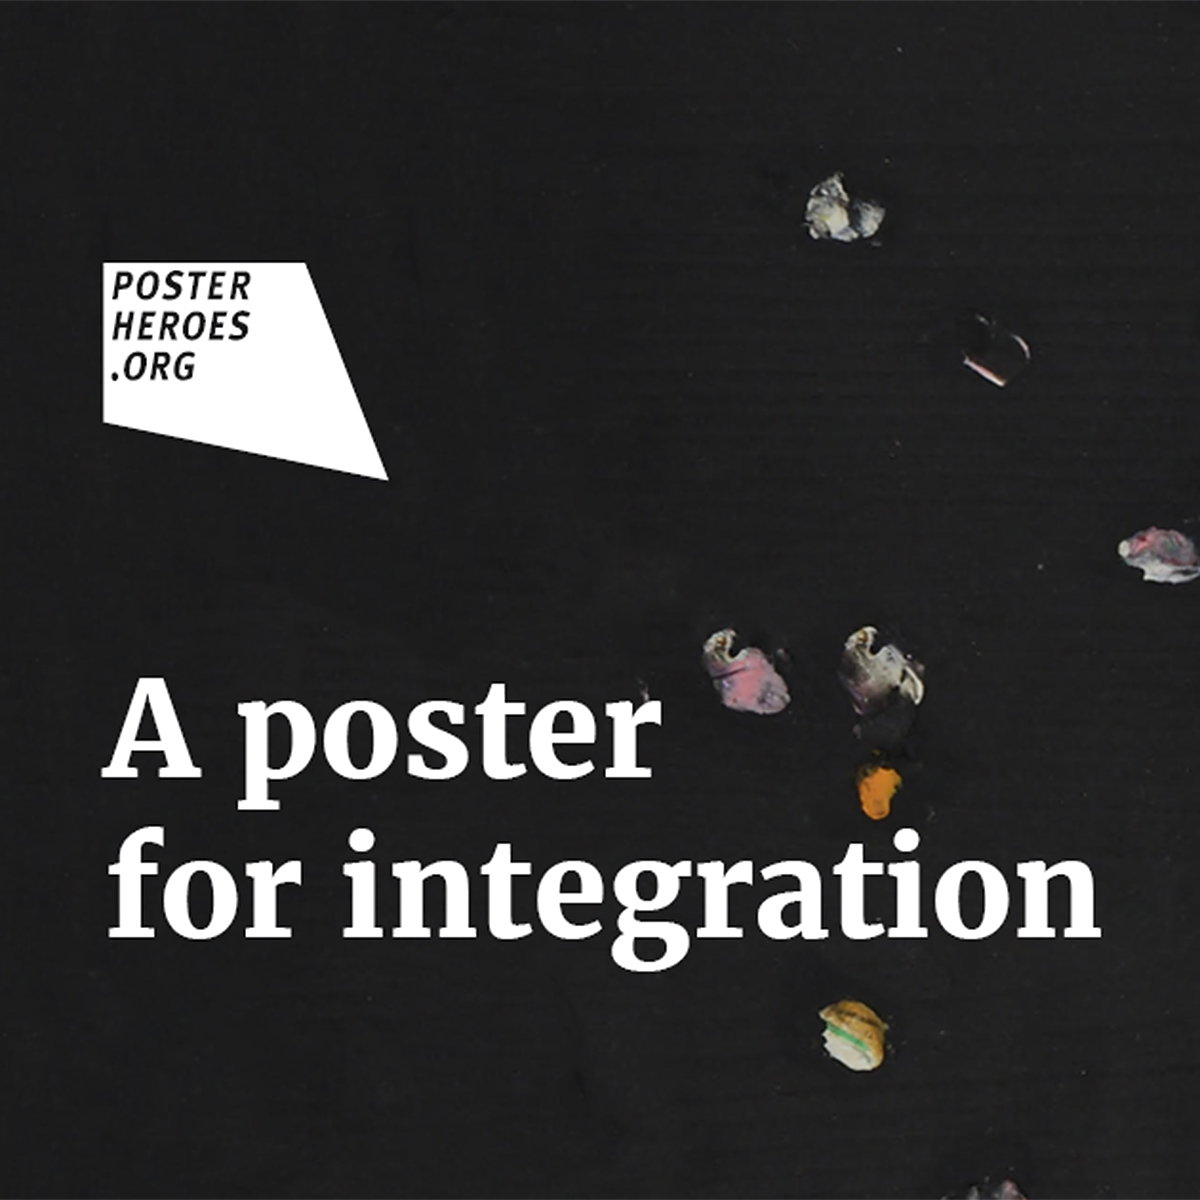 Posterheroes​ 2019 - A Poster for Integration